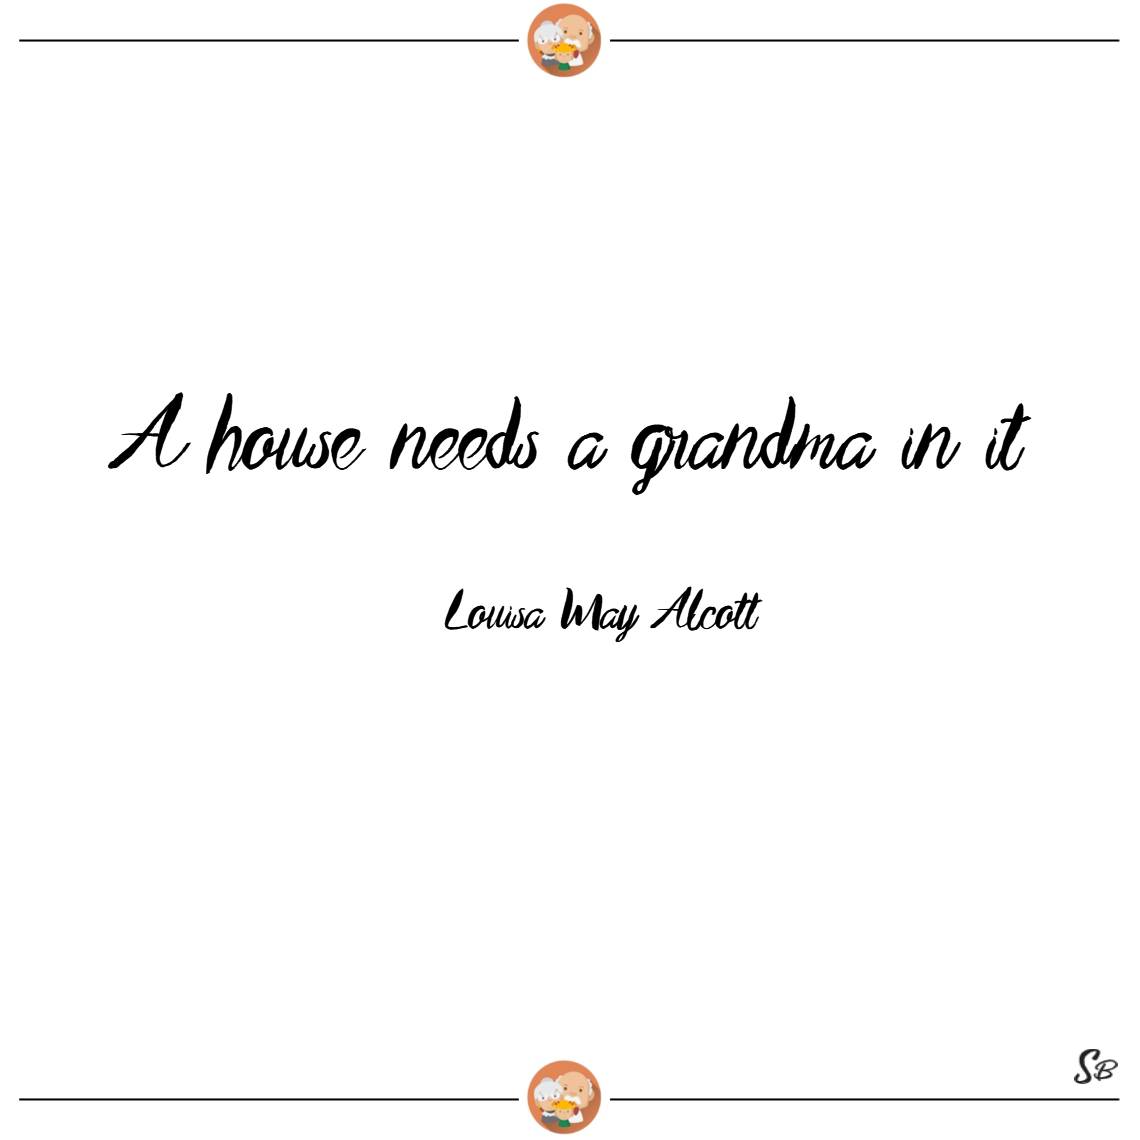 A house needs a grandma in it. – louisa may alcott